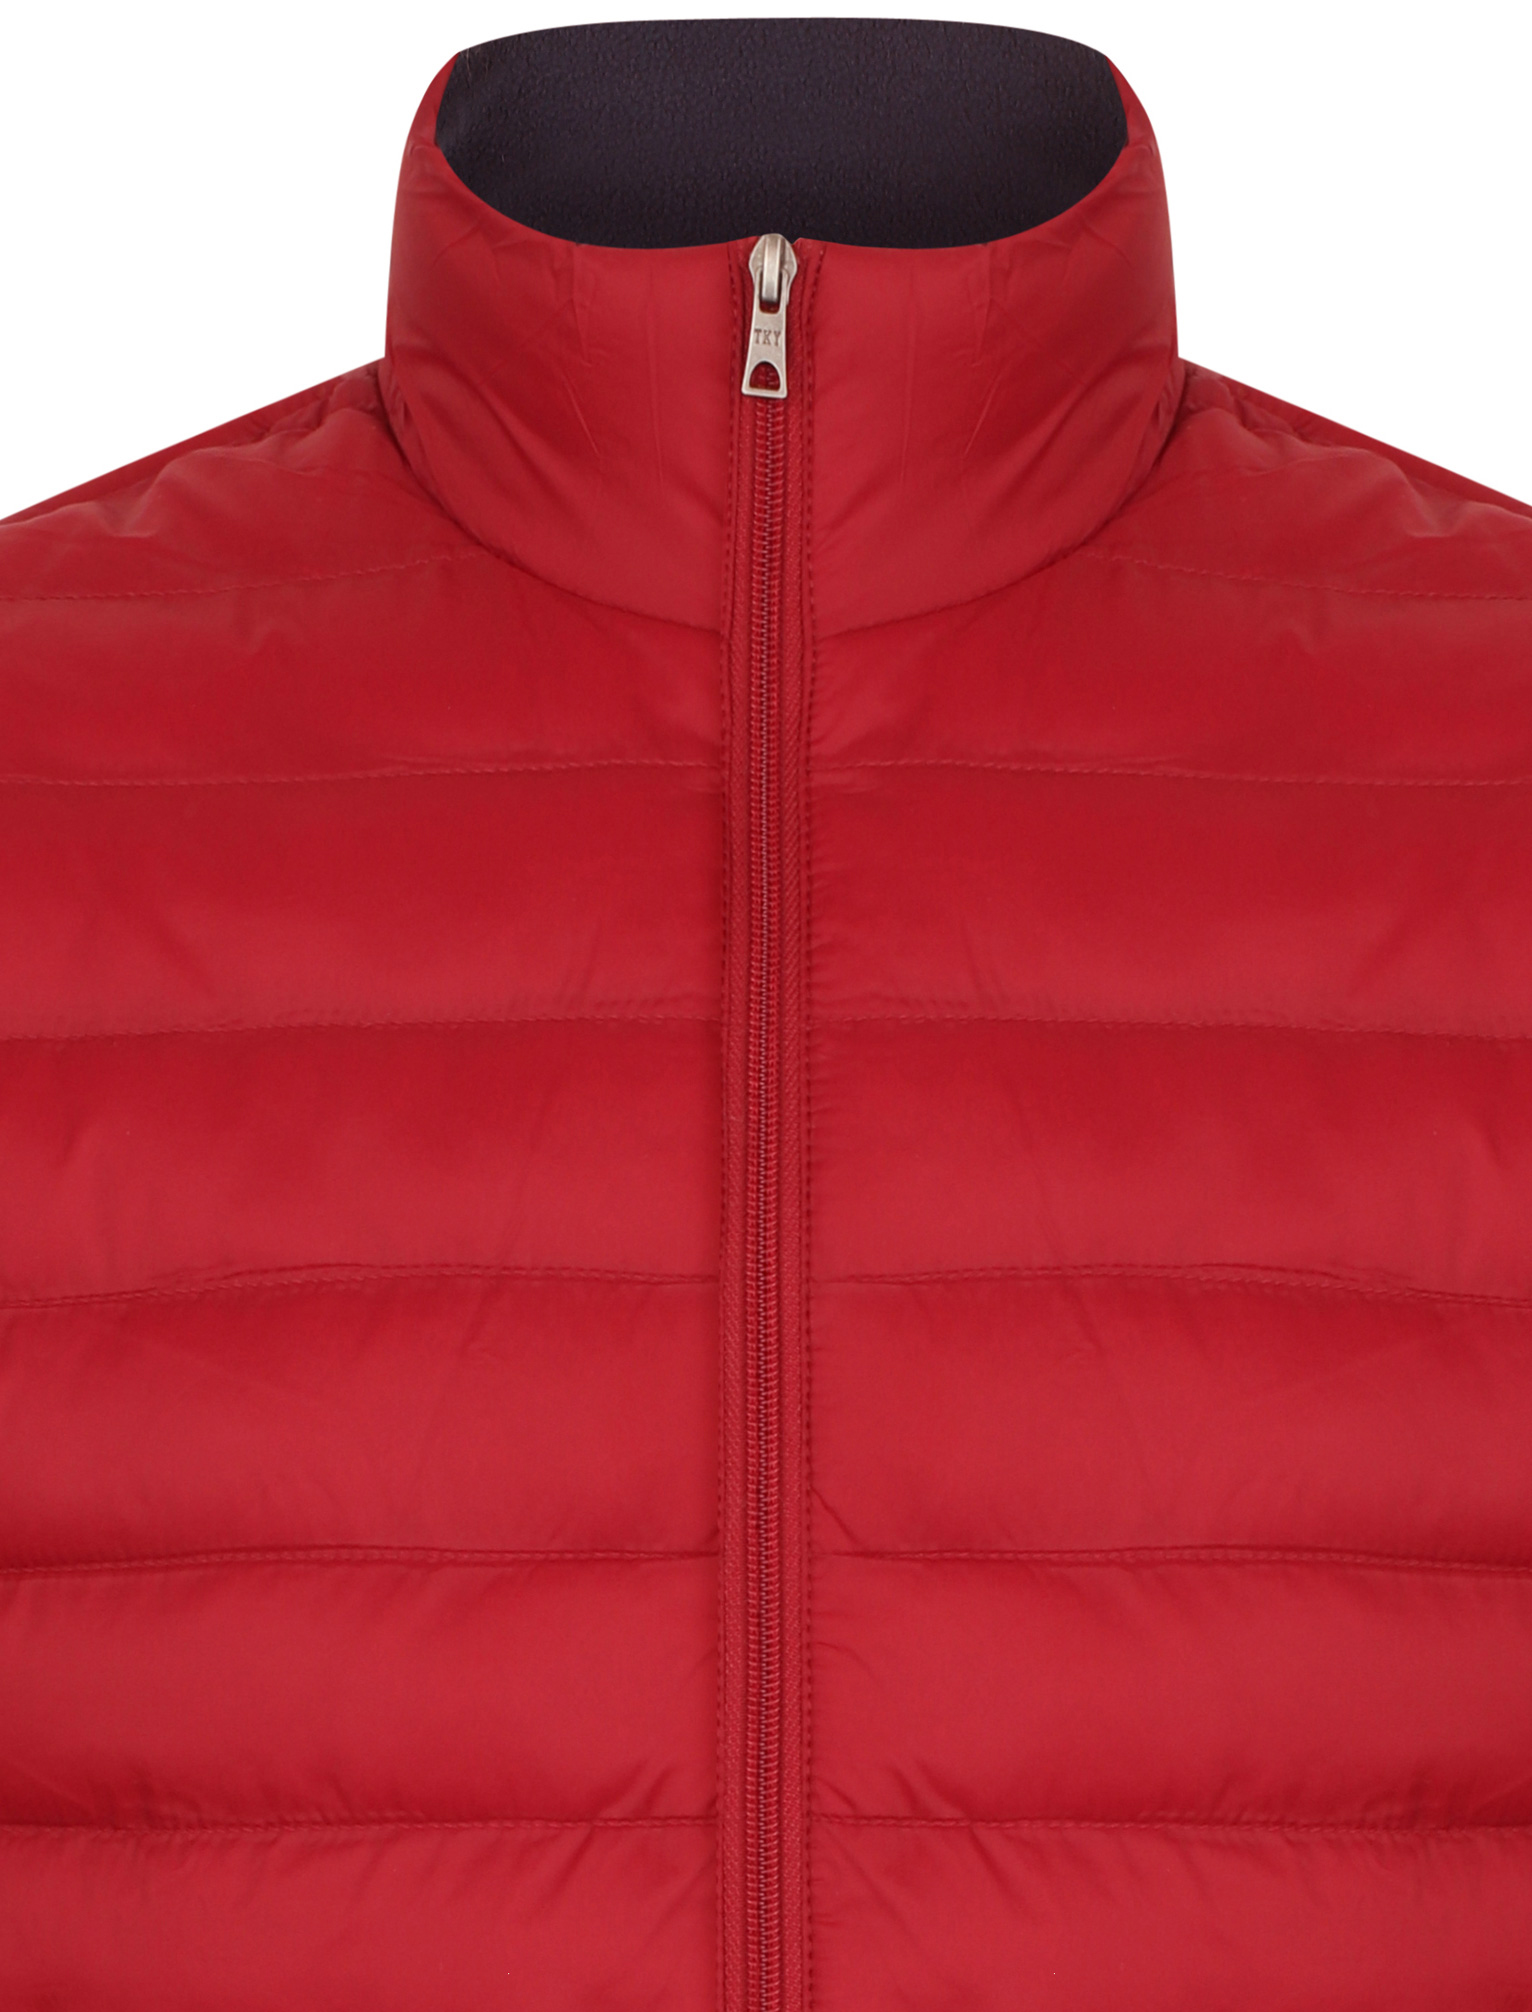 Tokyo-Laundry-Men-039-s-Bakman-Plain-Quilted-Padded-Puffer-Bubble-Jacket thumbnail 3